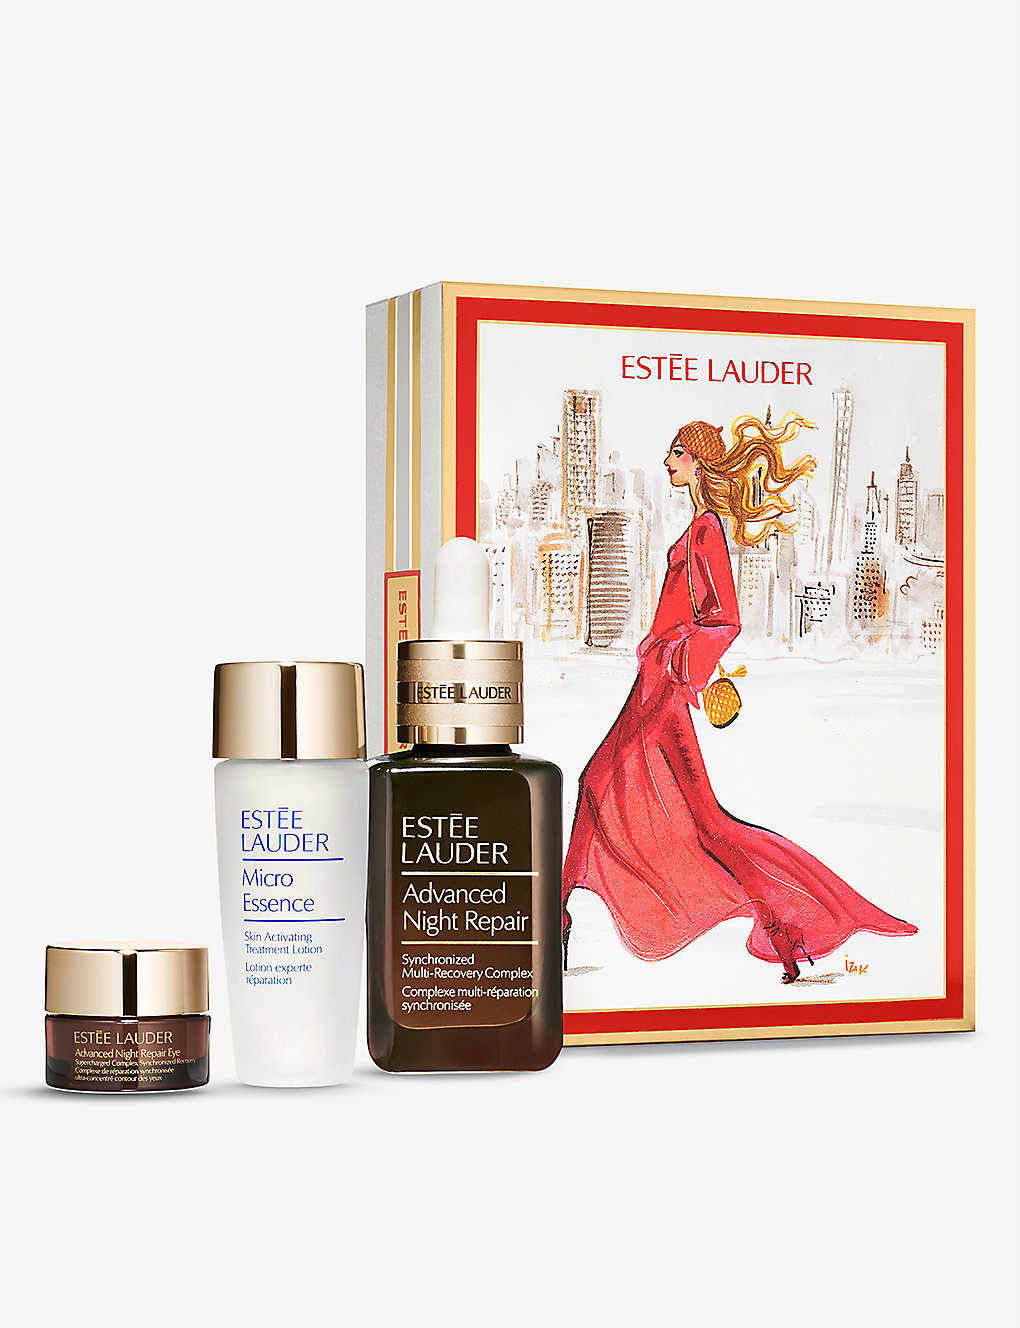 ESTEE LAUDER: Repair and Renew Skincare Collection gift set